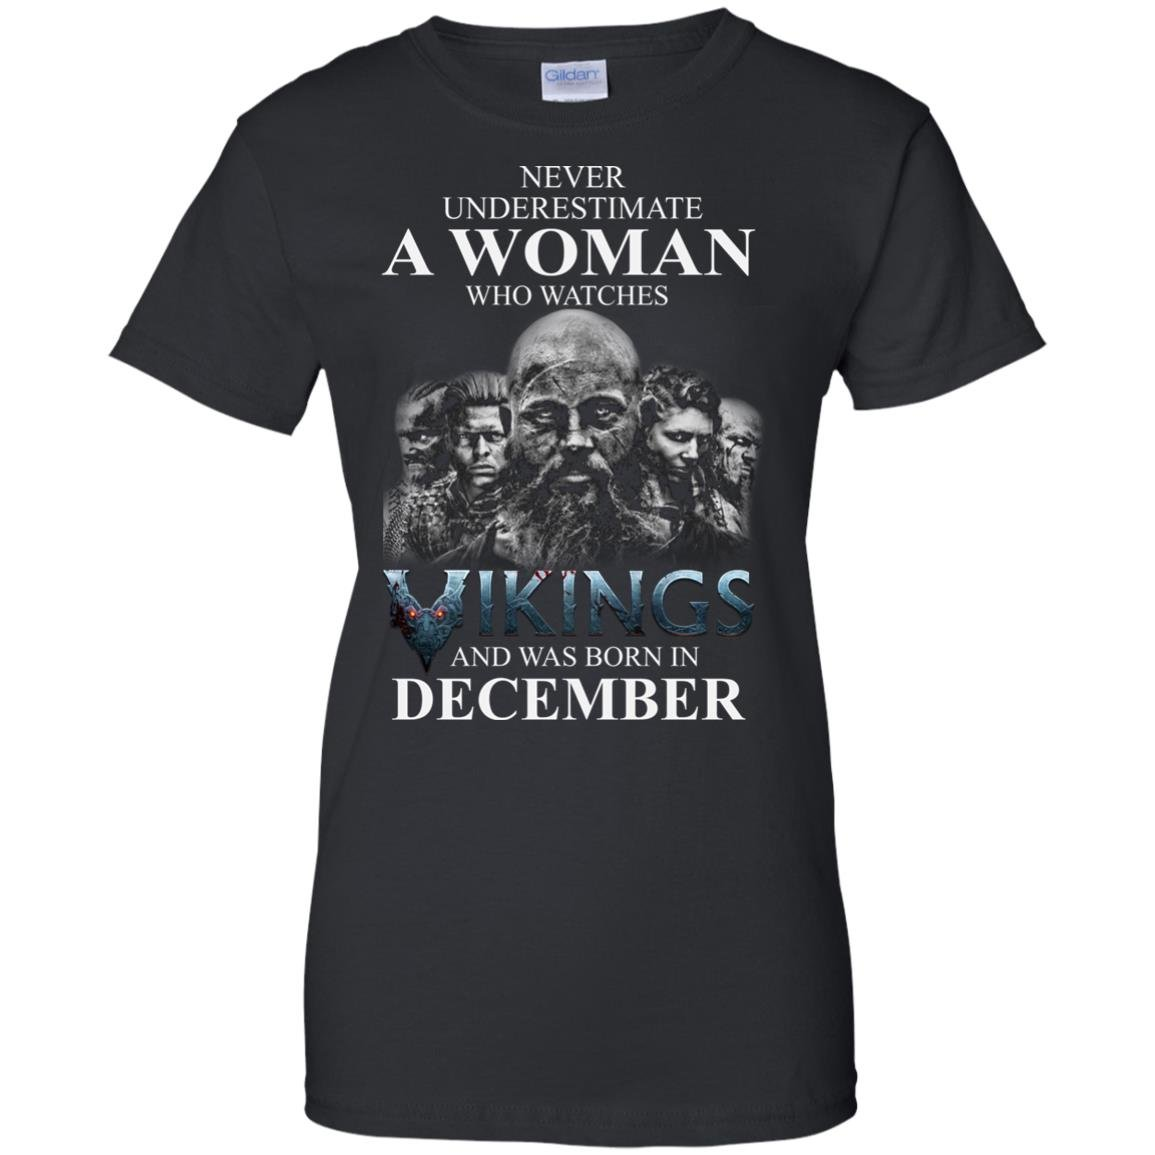 image 1229 - Never Underestimate A woman who watches Vikings and was born in December shirt